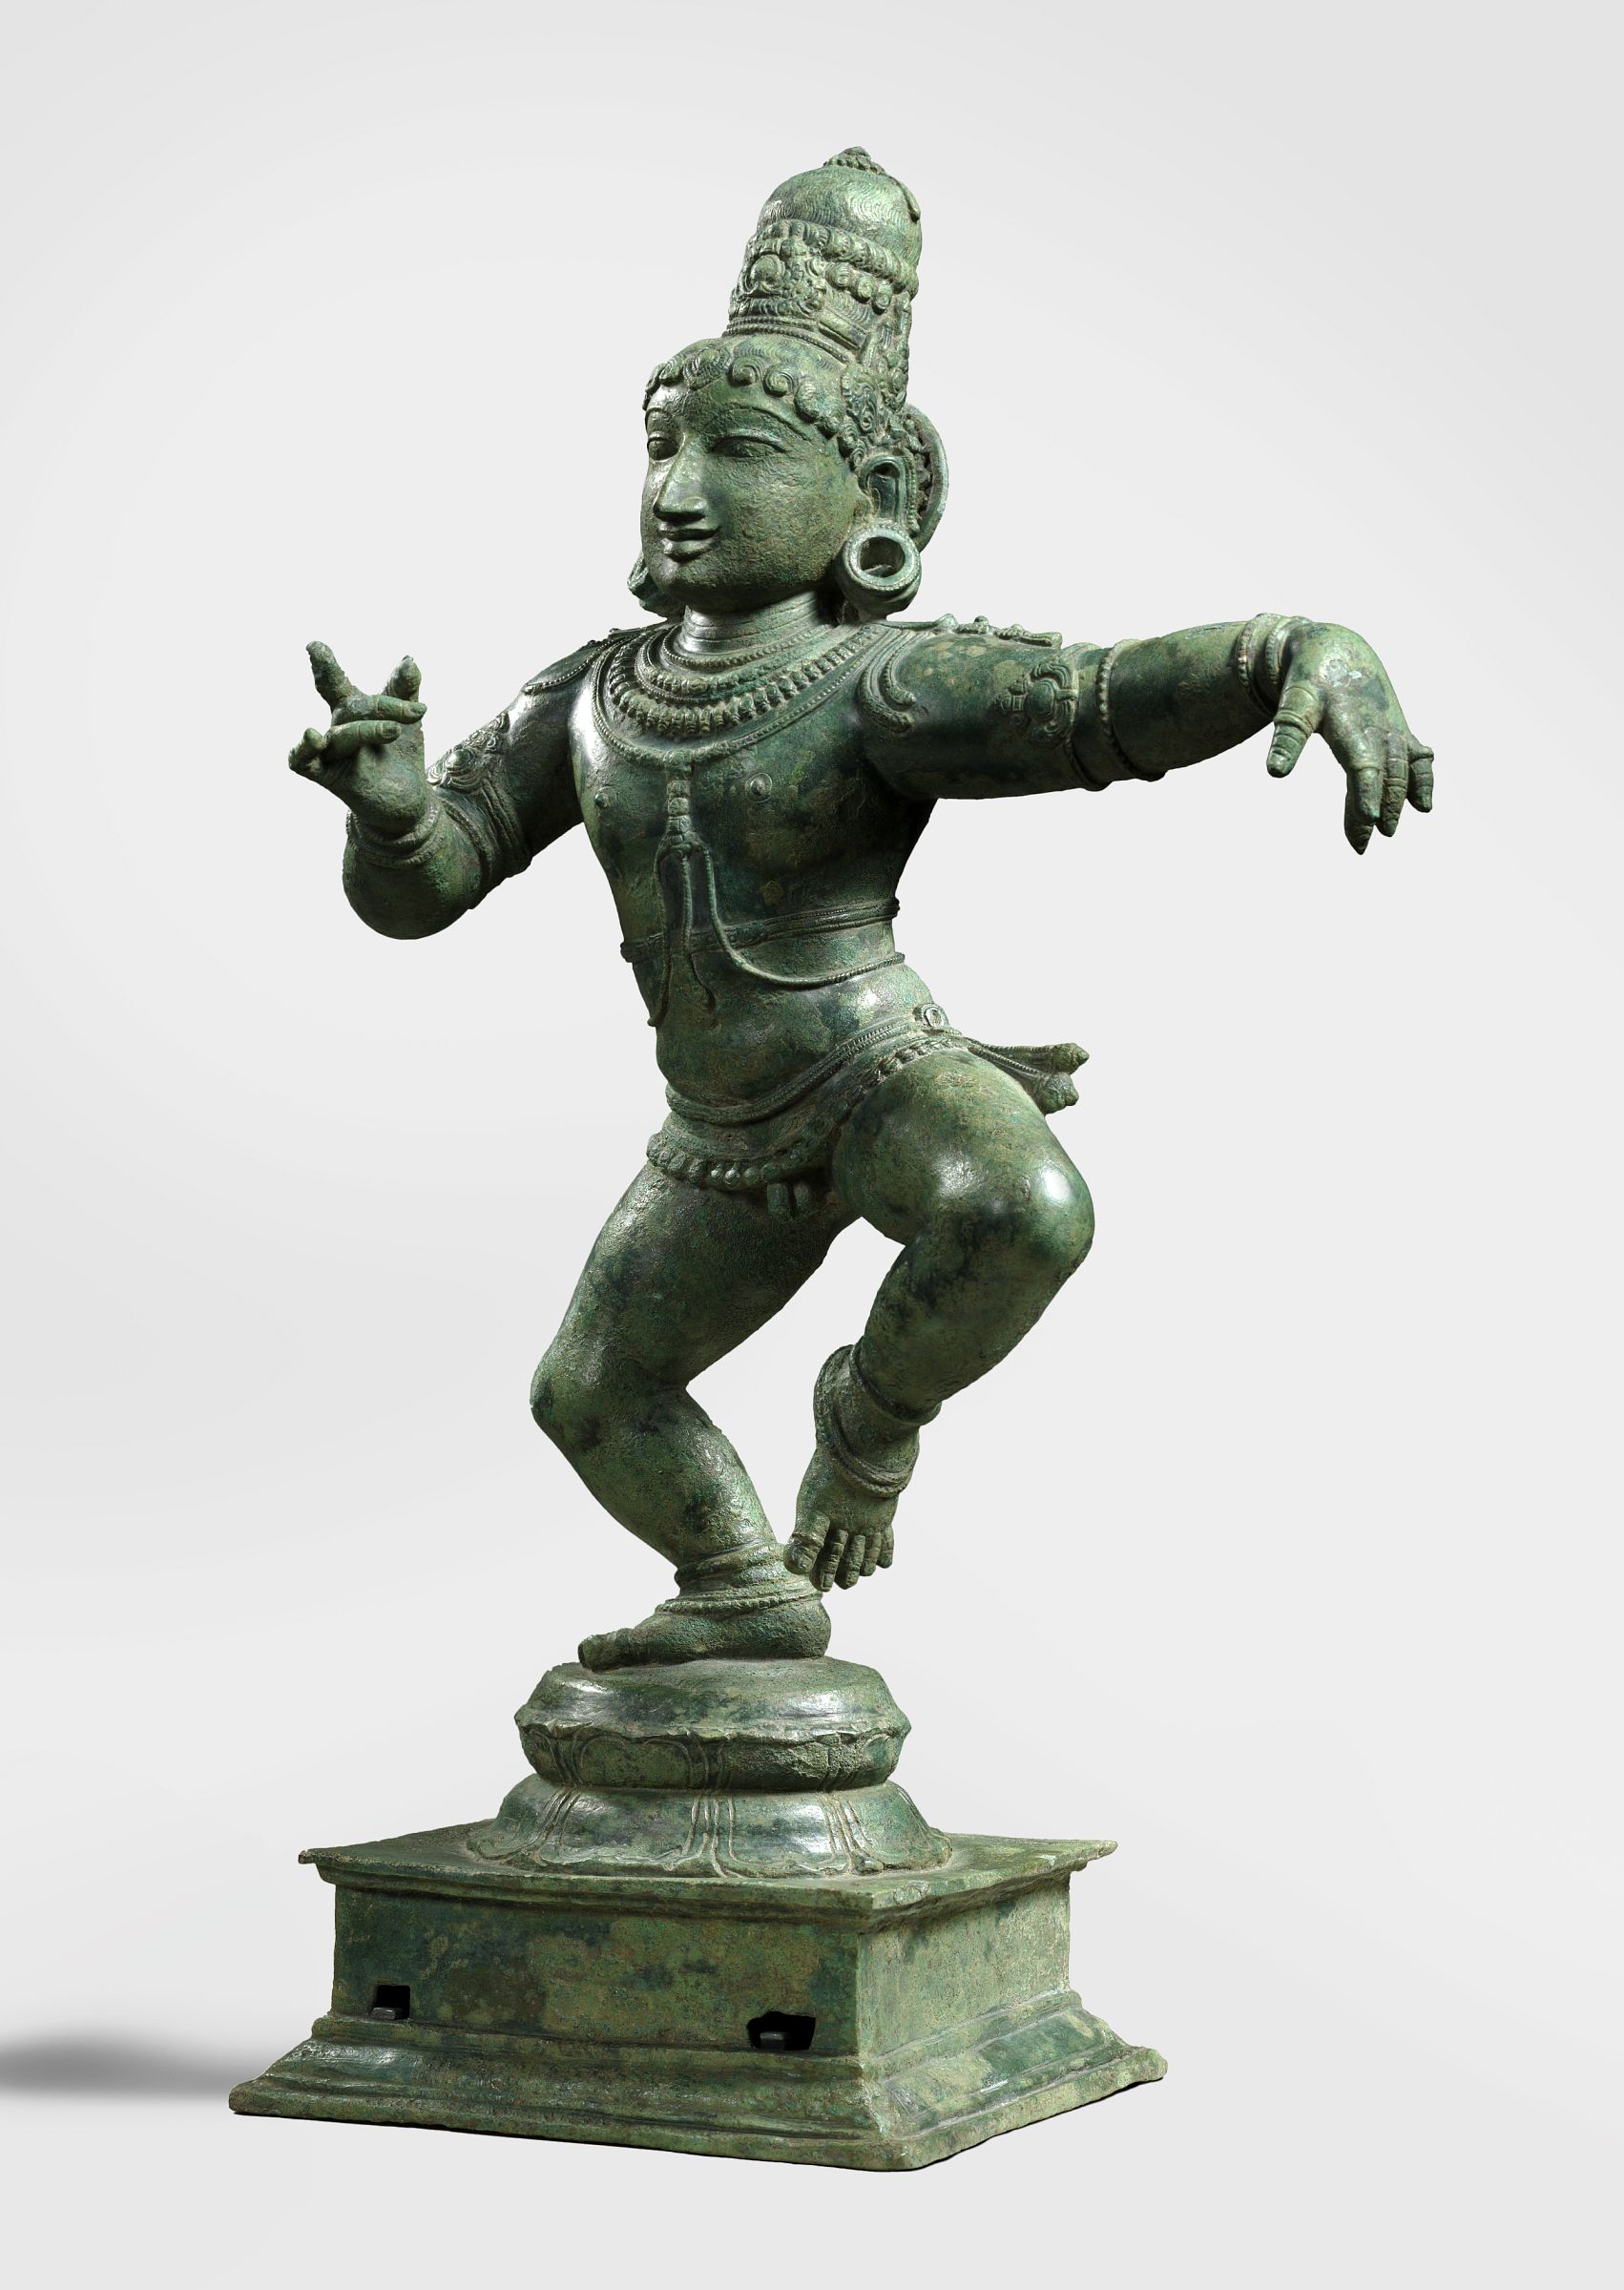 A statue of a child dancing.